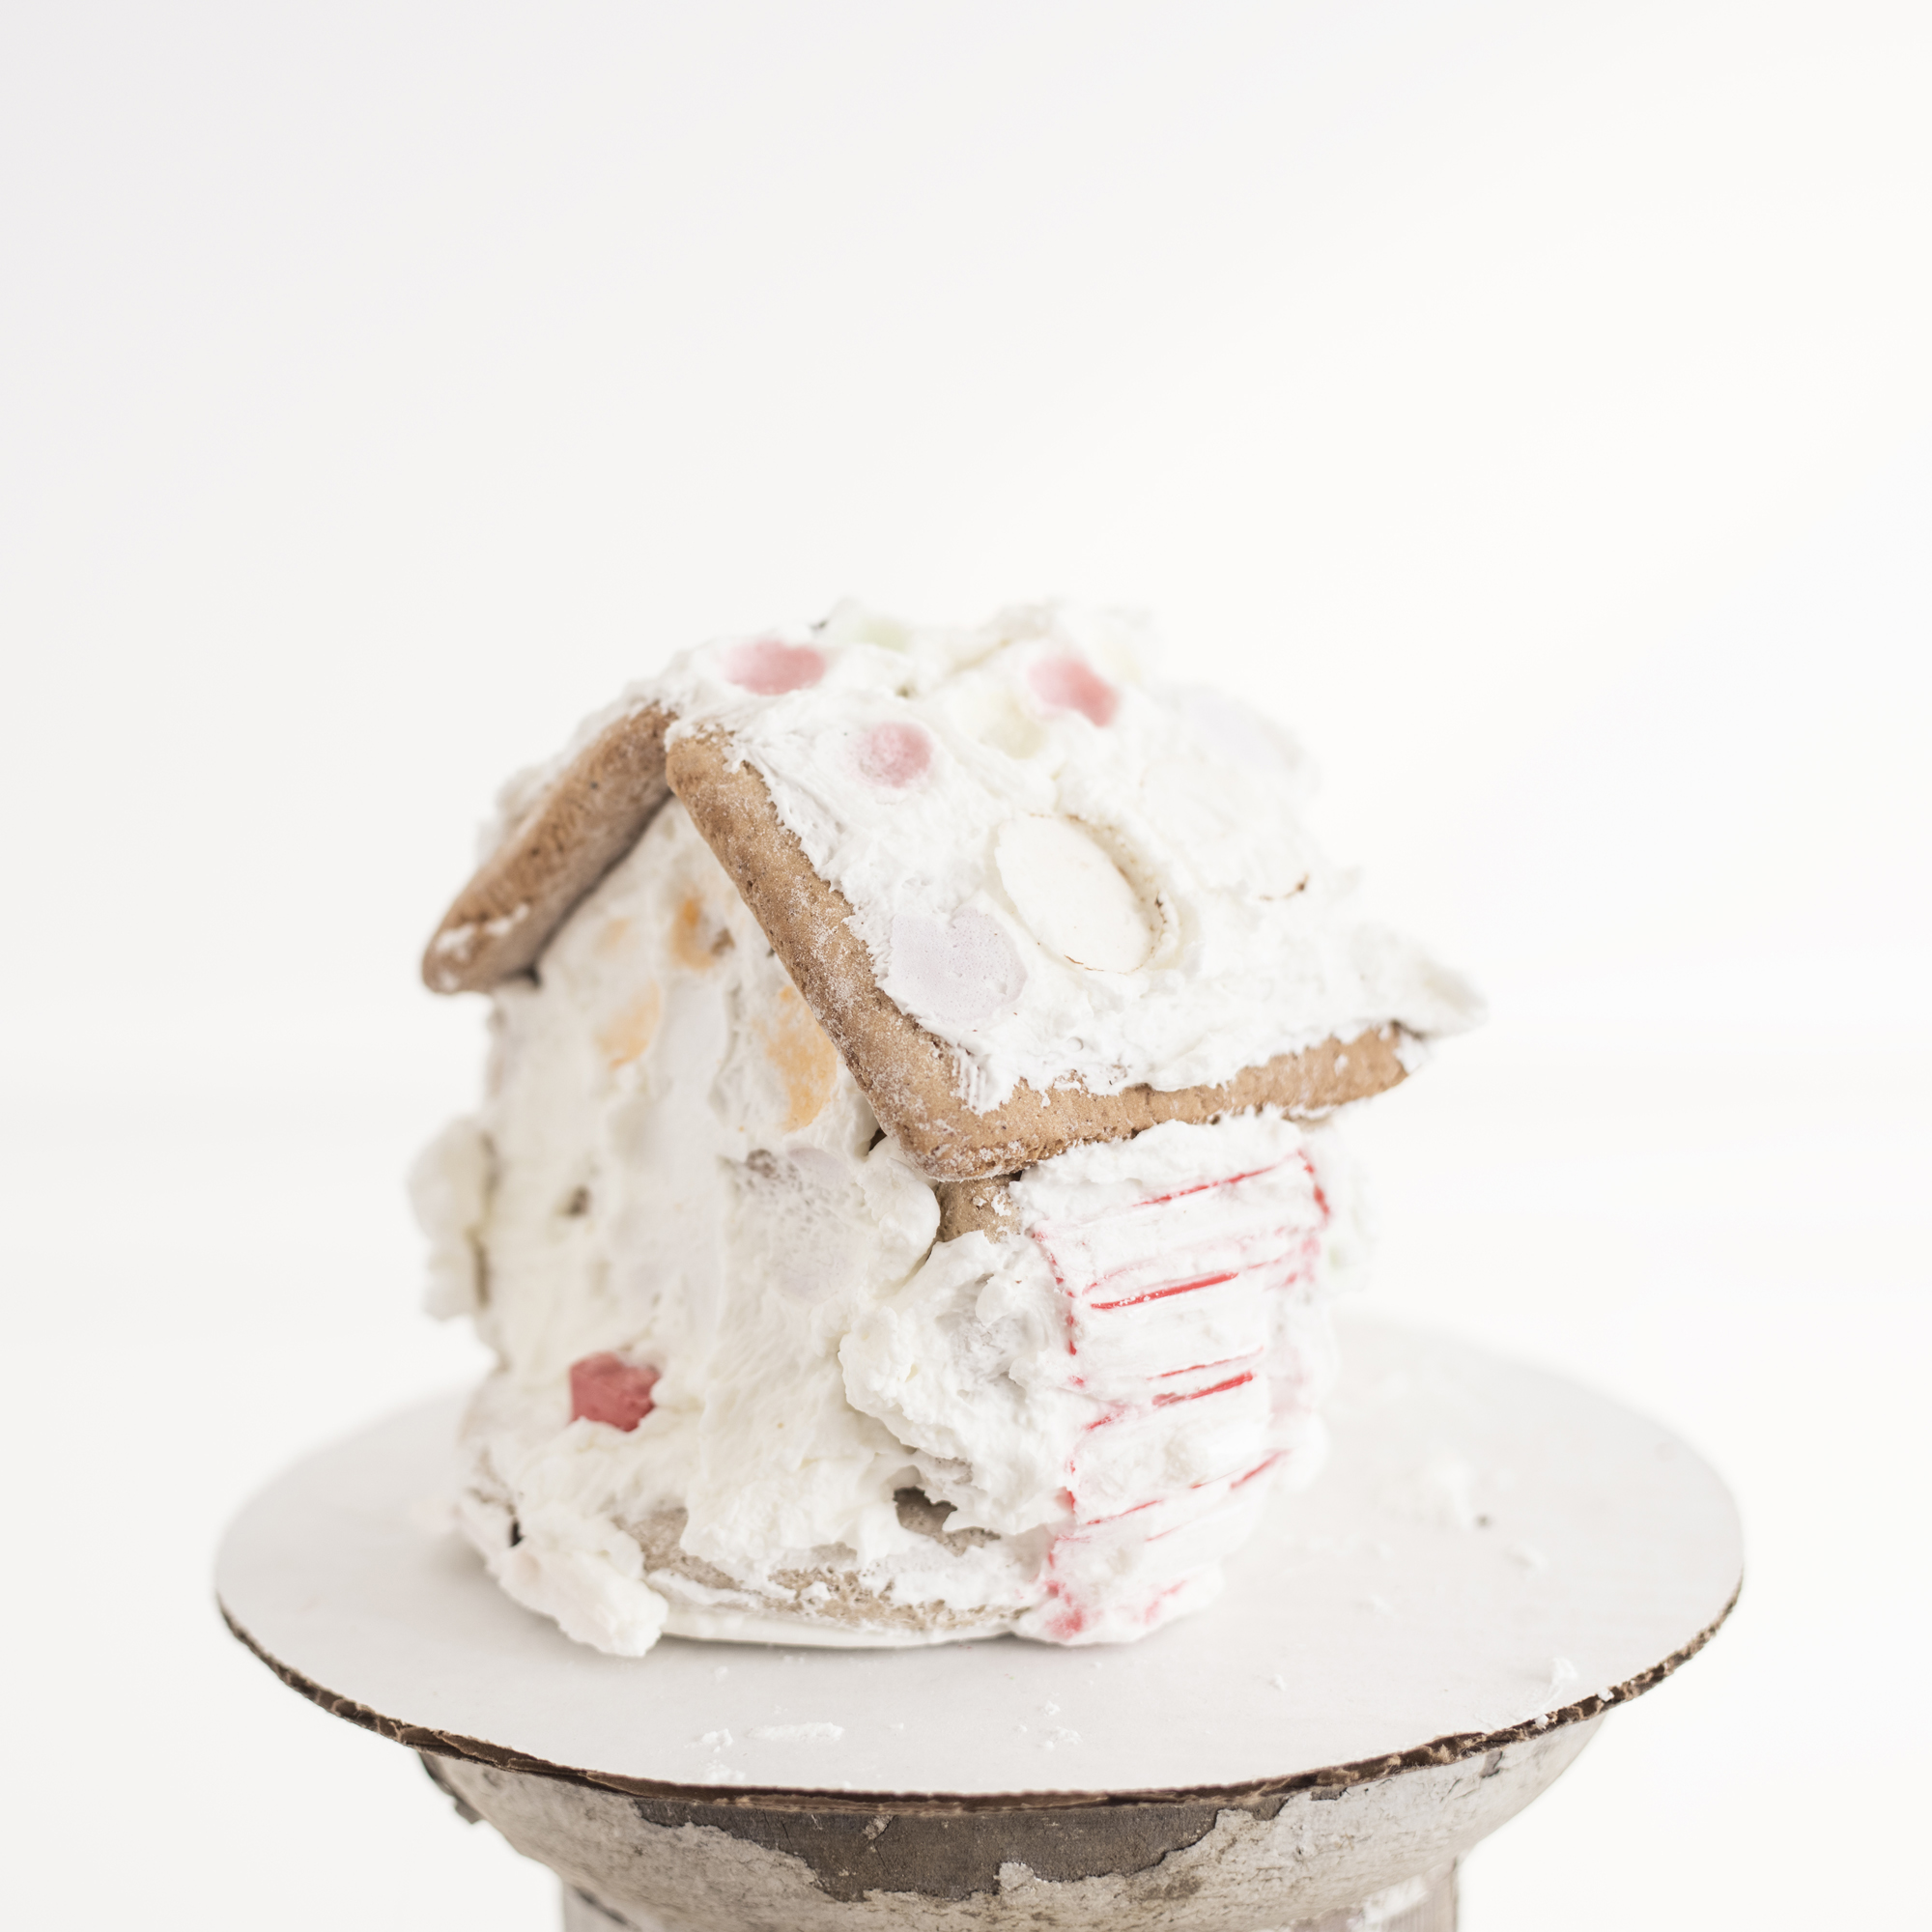 Gingerbread House, 2015